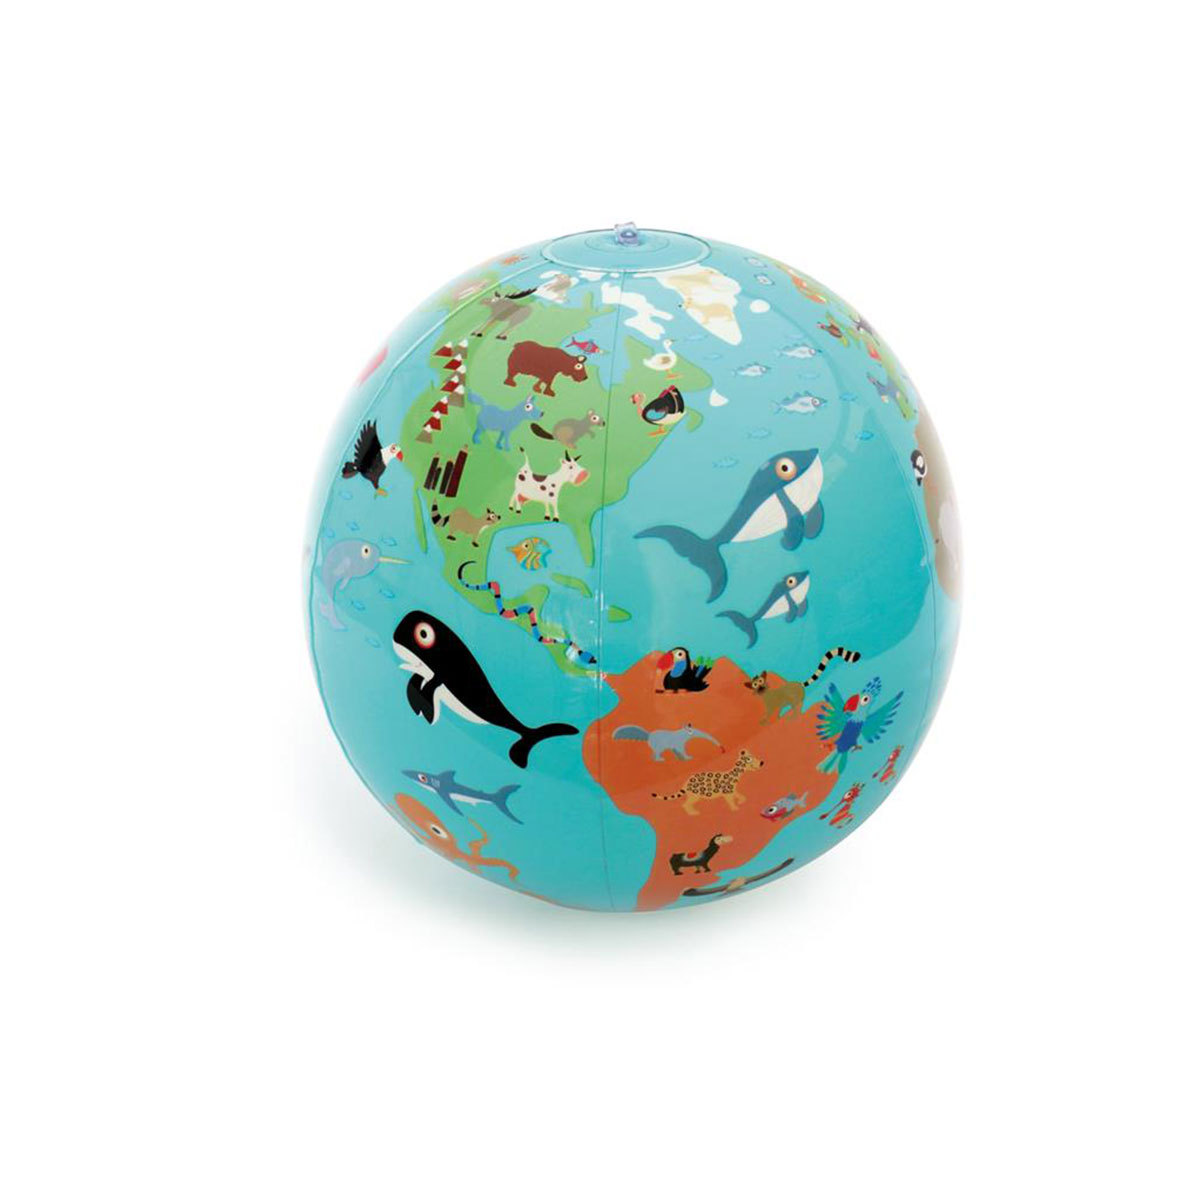 Mes premiers jouets Globe Gonflable